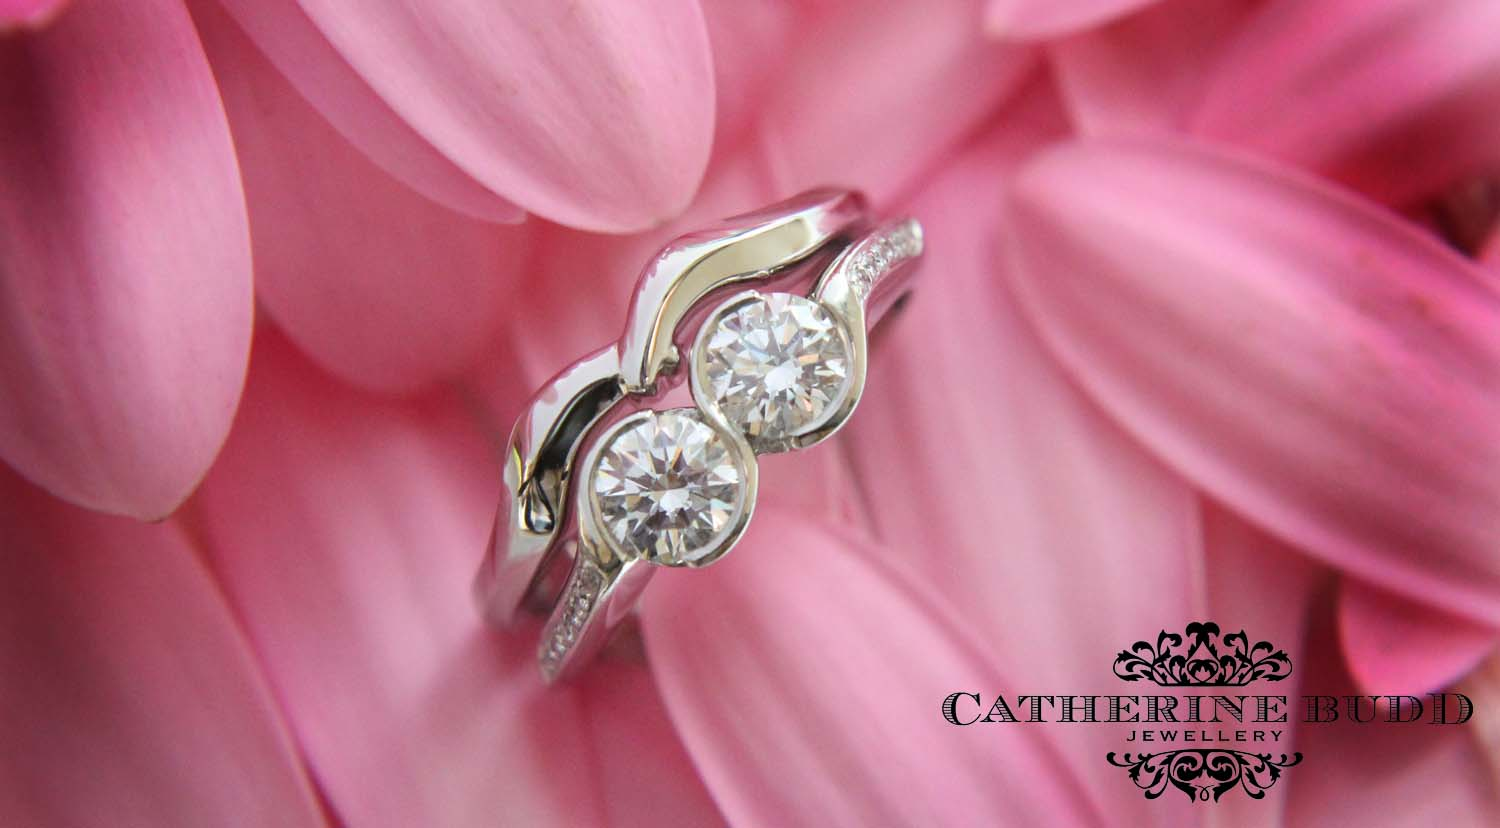 CATHERINE BUDD JEWELLERY: A perfect wedding and engagement ring match...